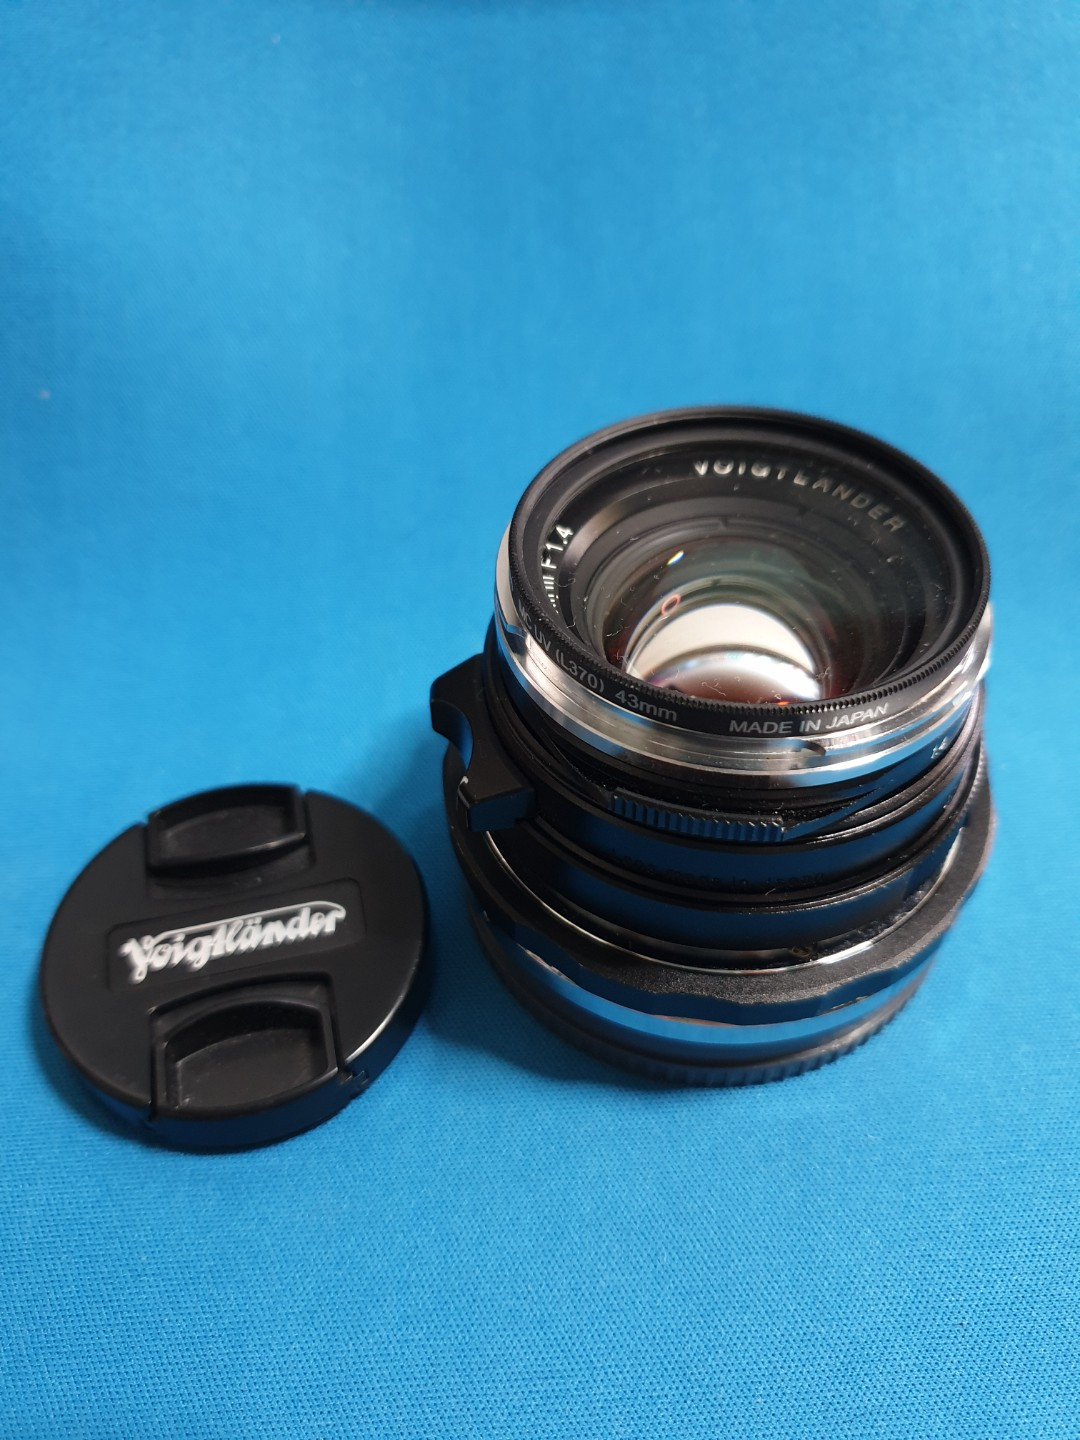 Voigtlander 35mm f1 4 VM-mount with close focusing E-mount adaptor  All  item shown here are sold as it is shown  Everything here is of good  condition